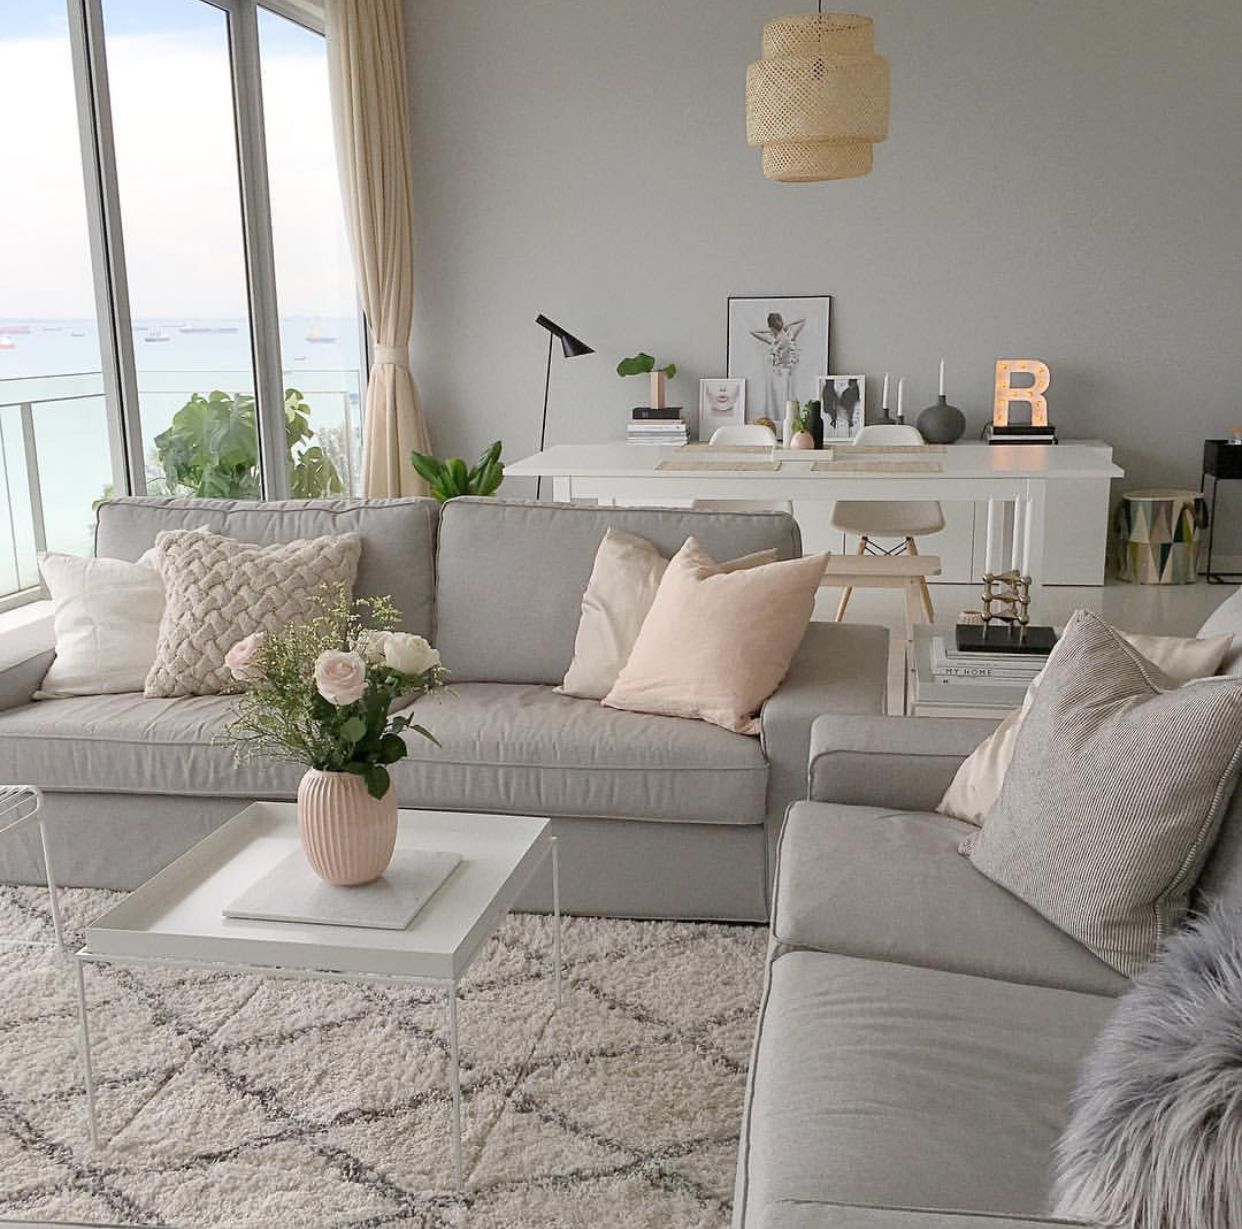 Simple neutral color living room | Living room dining room ...